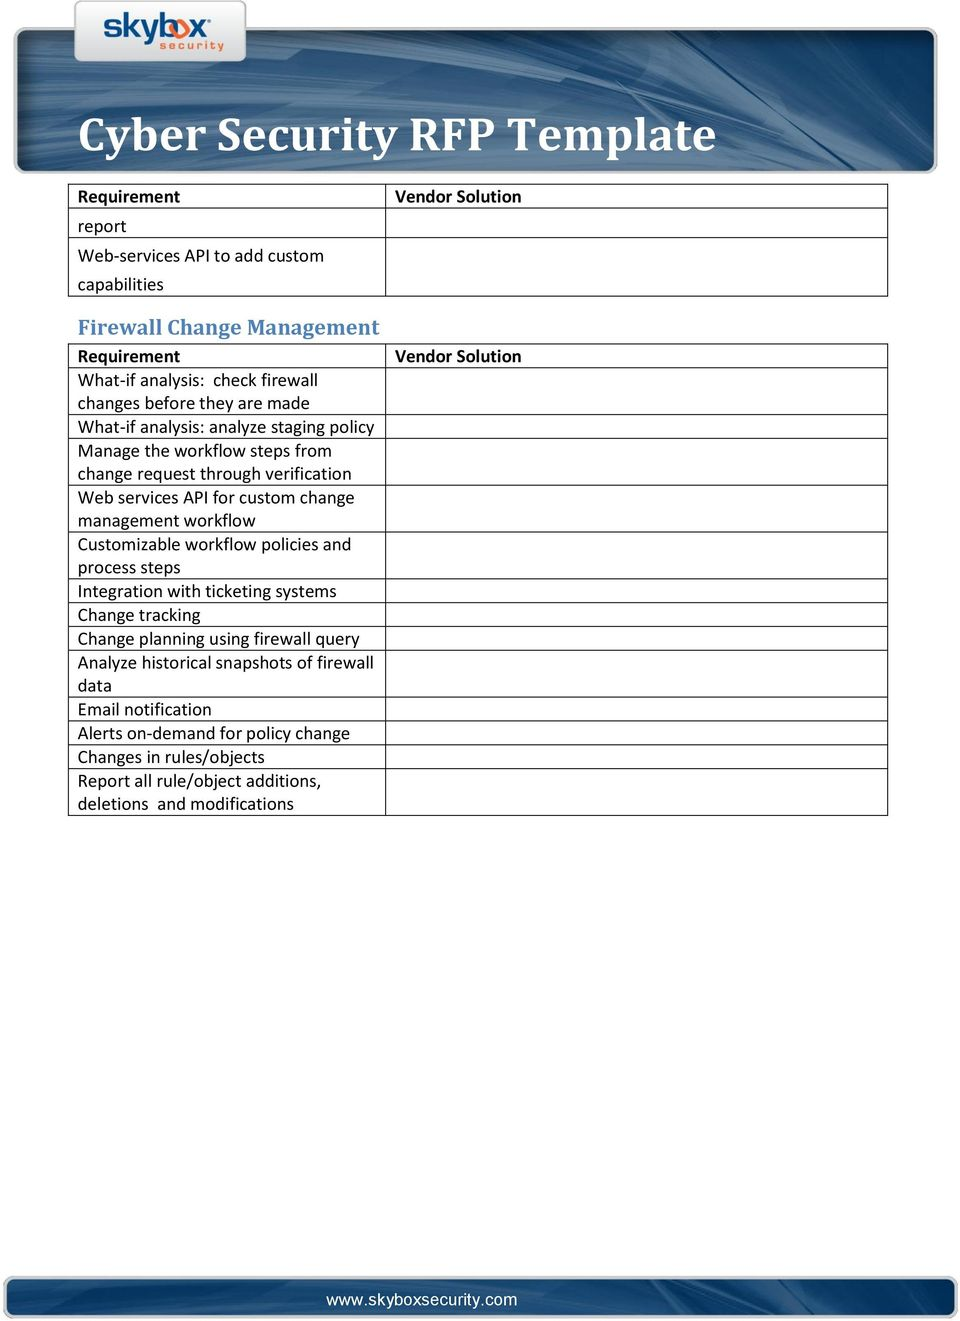 Cyber Security RFP Template - PDF